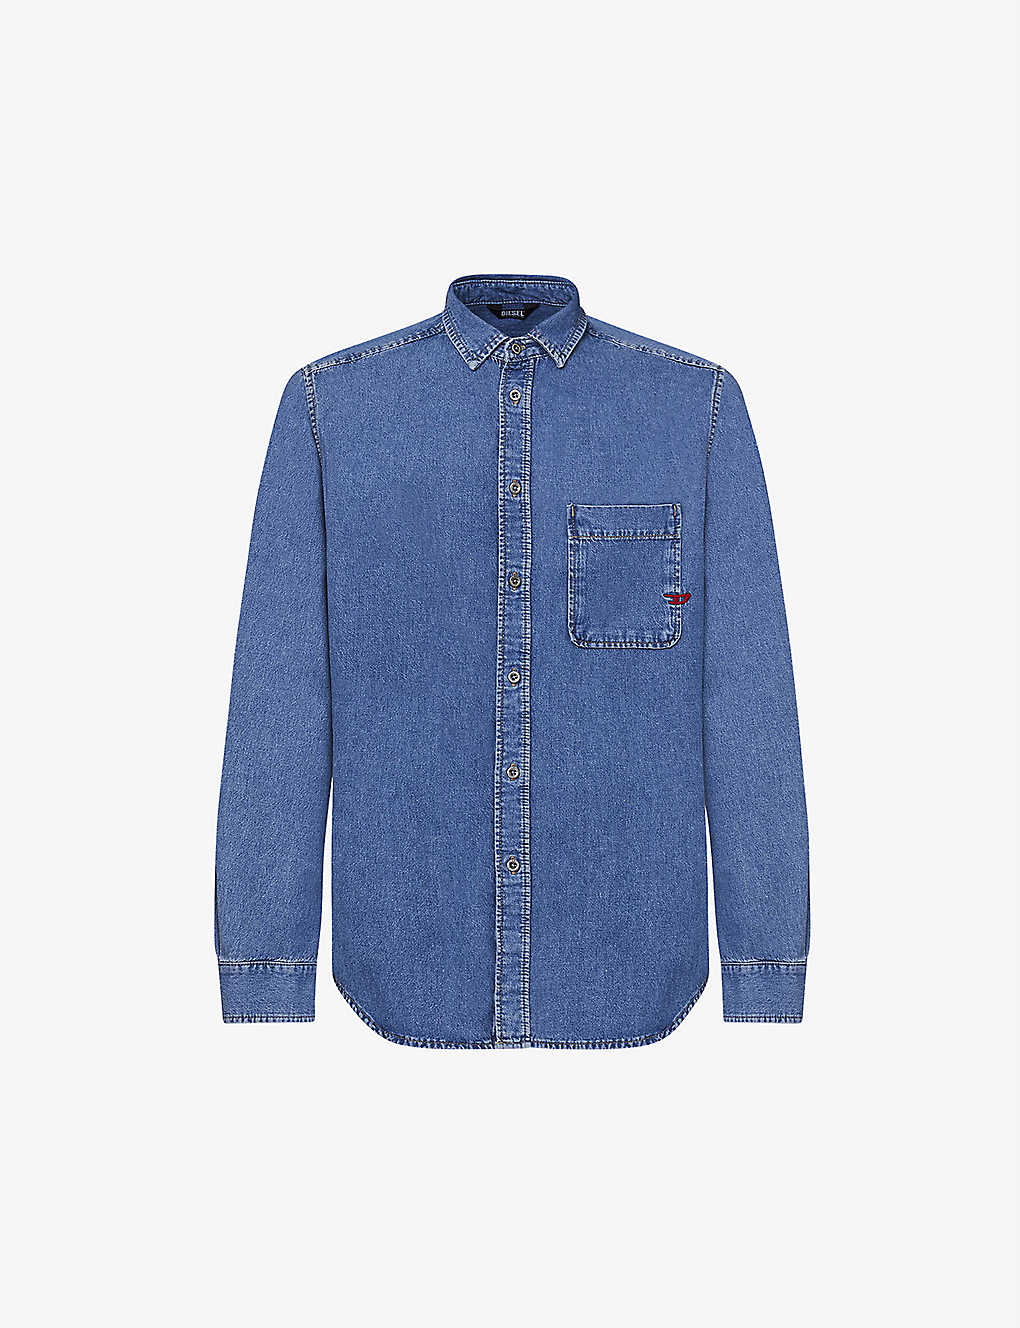 DIESEL: D-BILLY regular-fit denim shirt